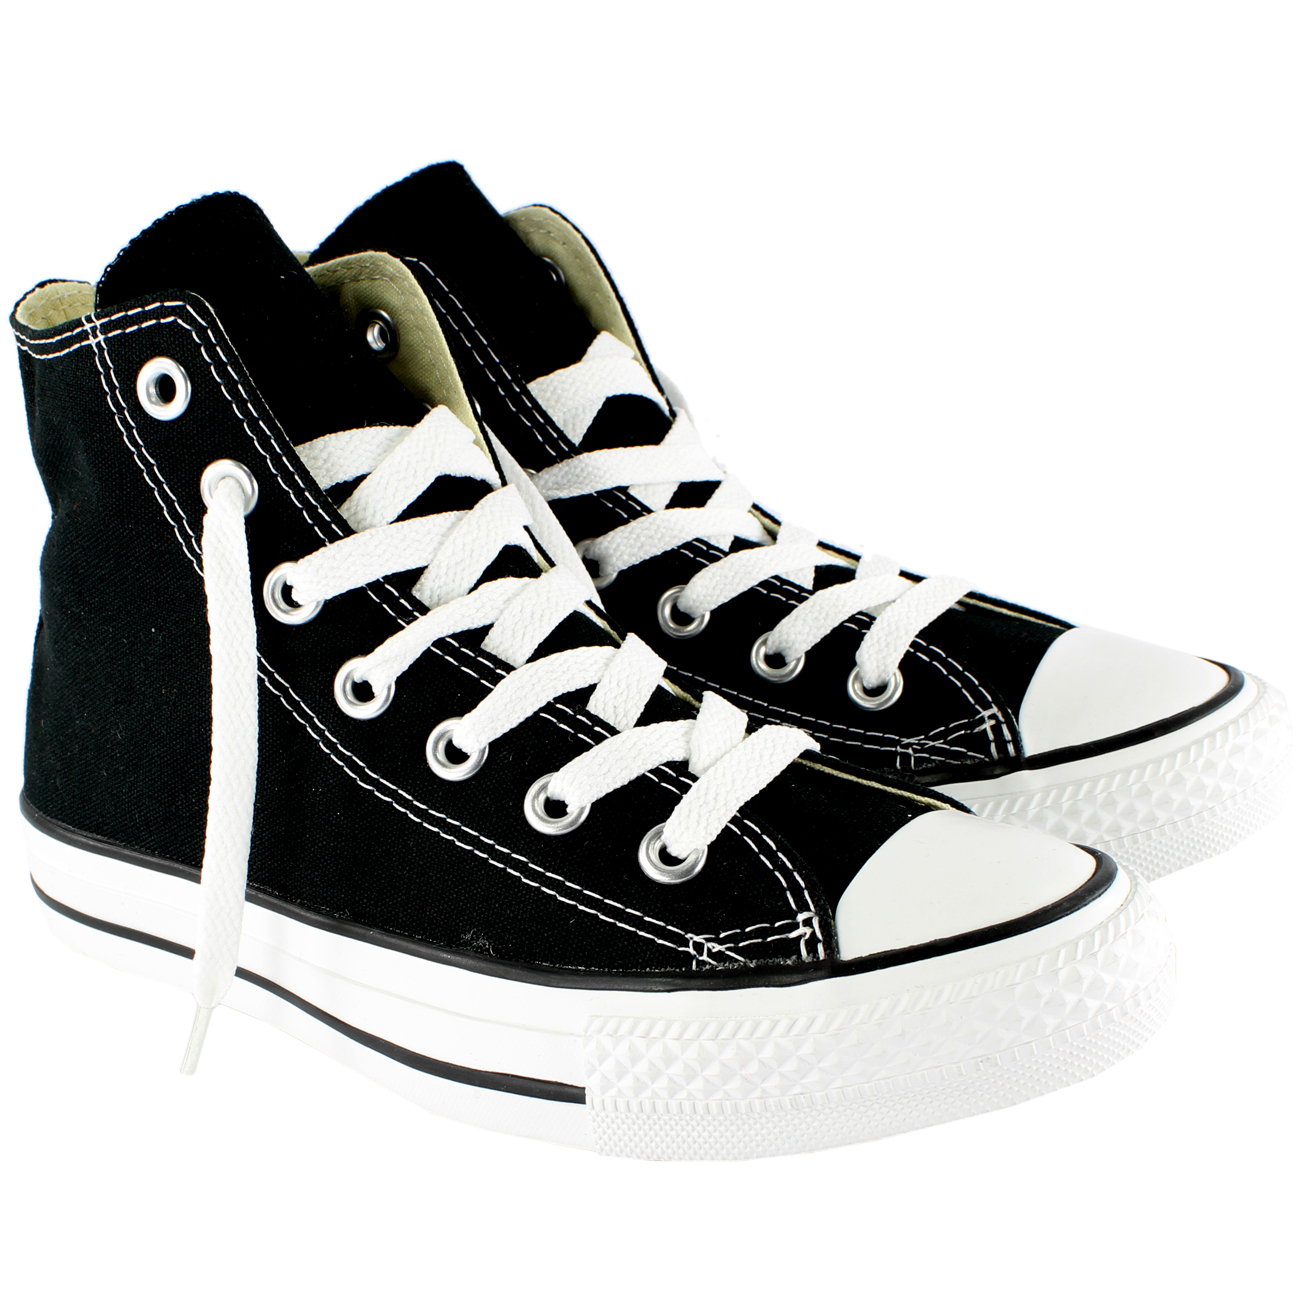 e4a39e89290 Womens Converse All Star Hi High Top Chuck Taylor Chucks Trainers UK ...